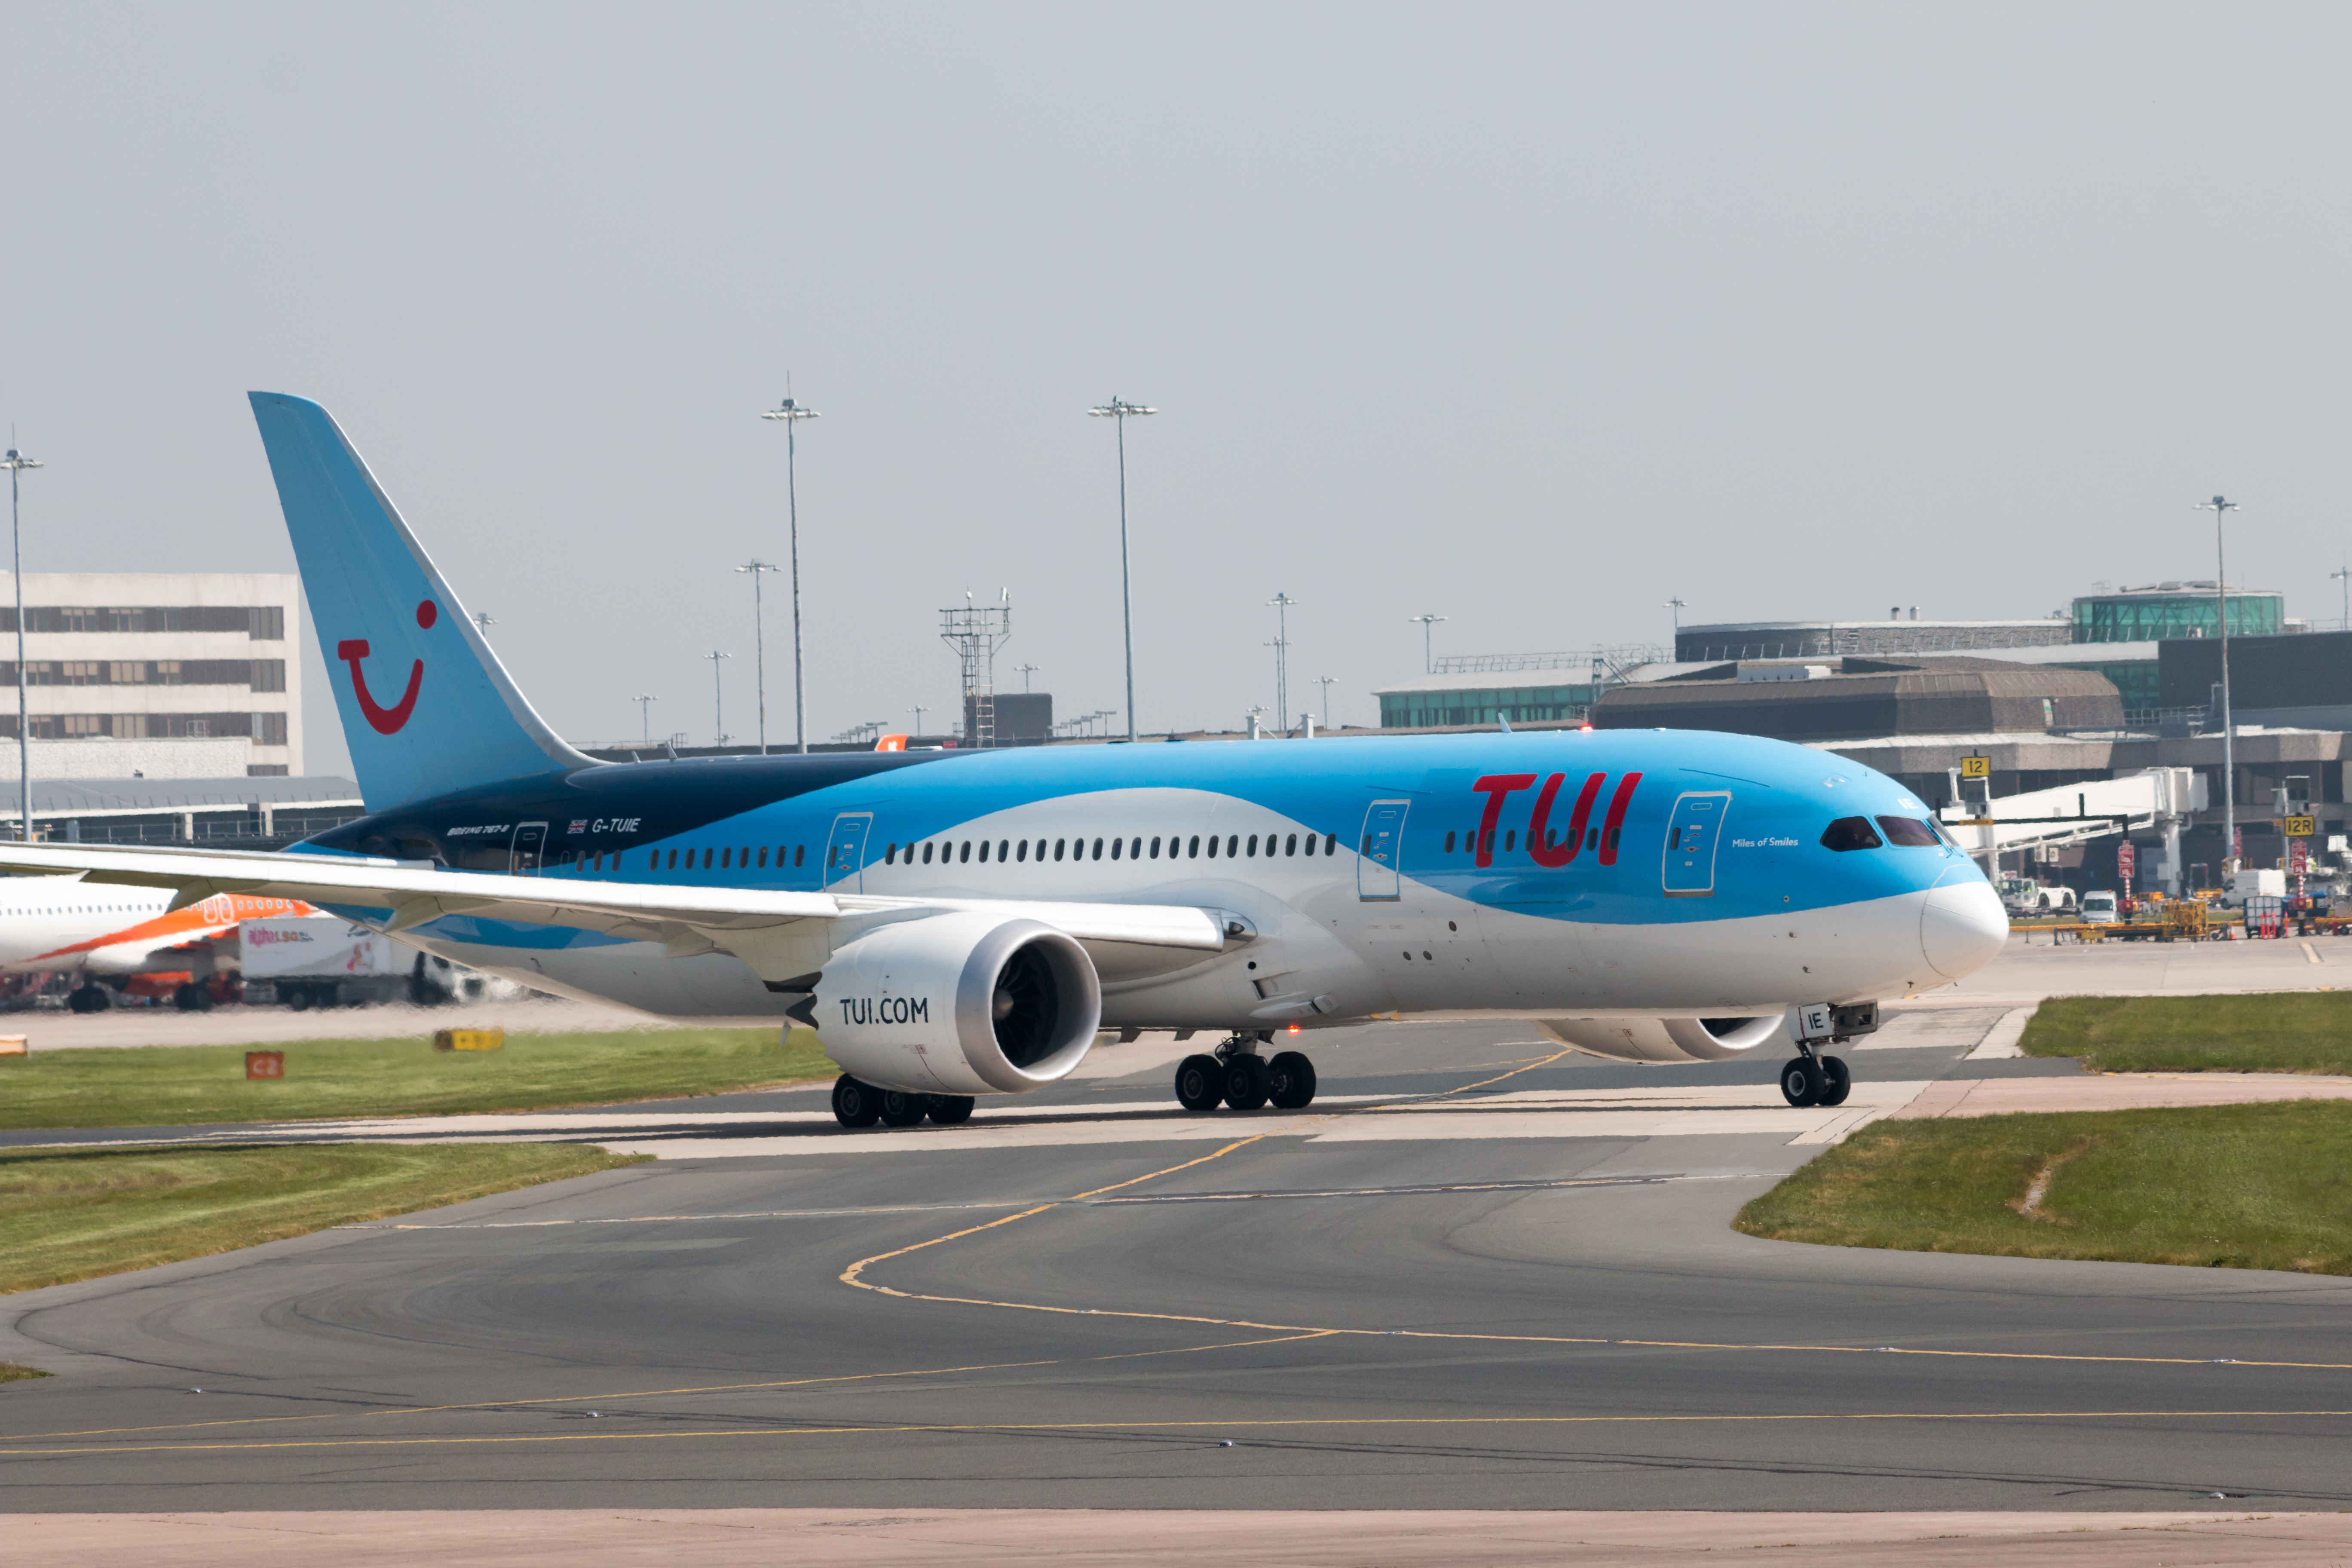 TUI Airlines Boeing 787-8 Dreamliner wide-body passenger plane